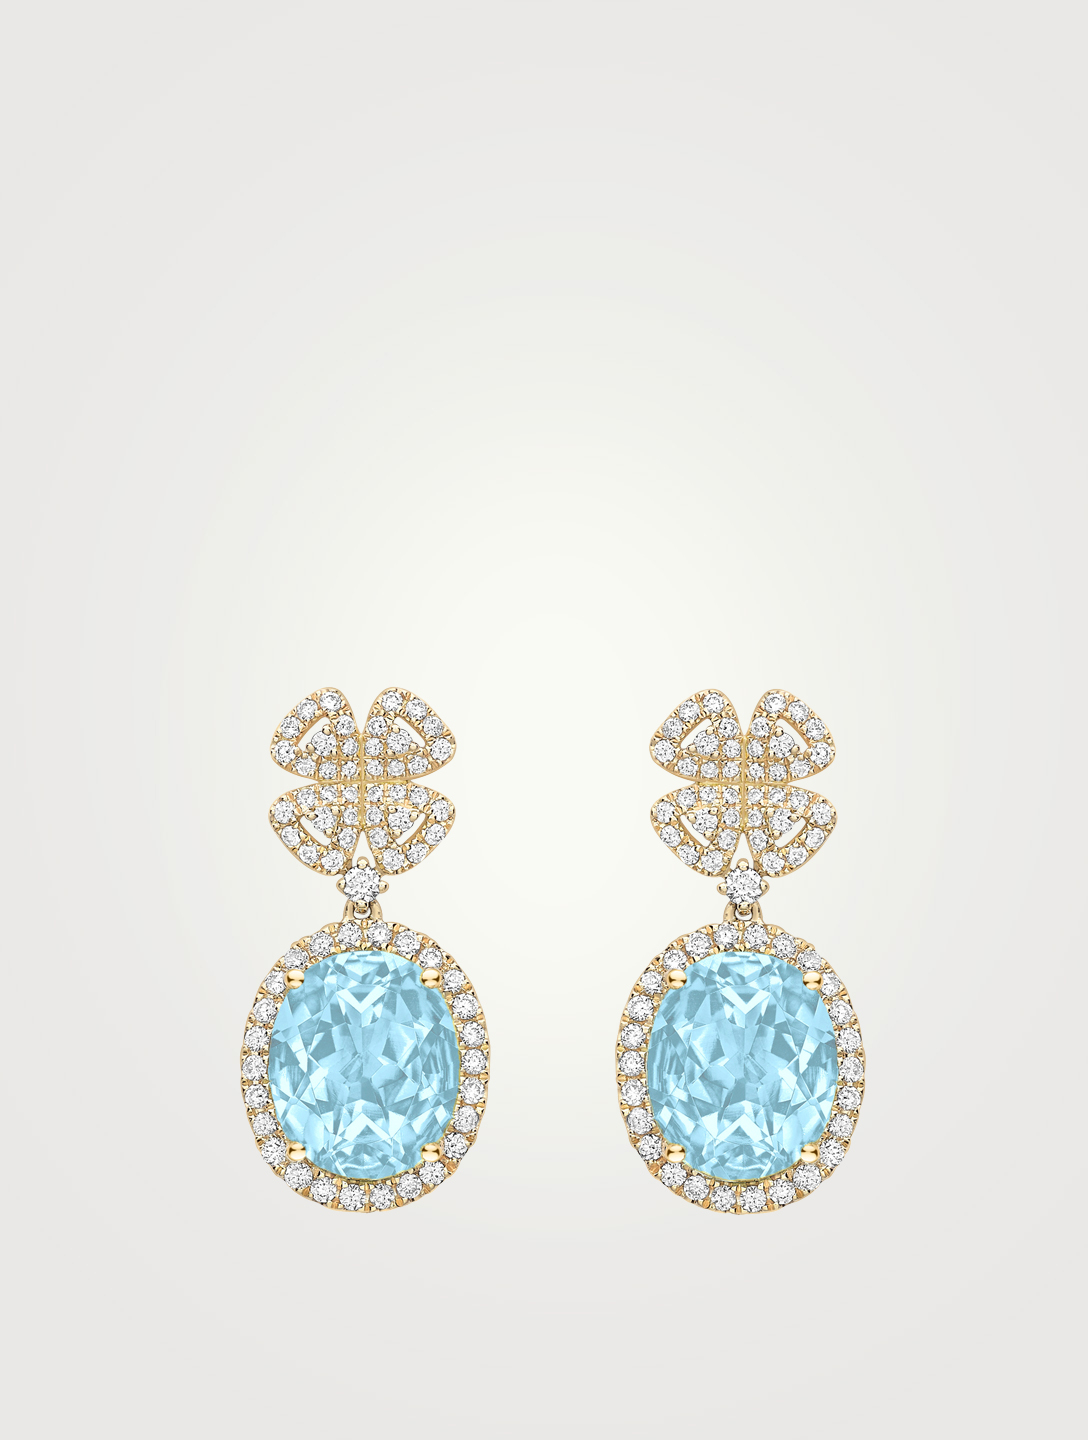 KIKI MCDONOUGH Signatures 18K Gold Clover Earrings With Diamonds And Blue Topaz Women's Metallic